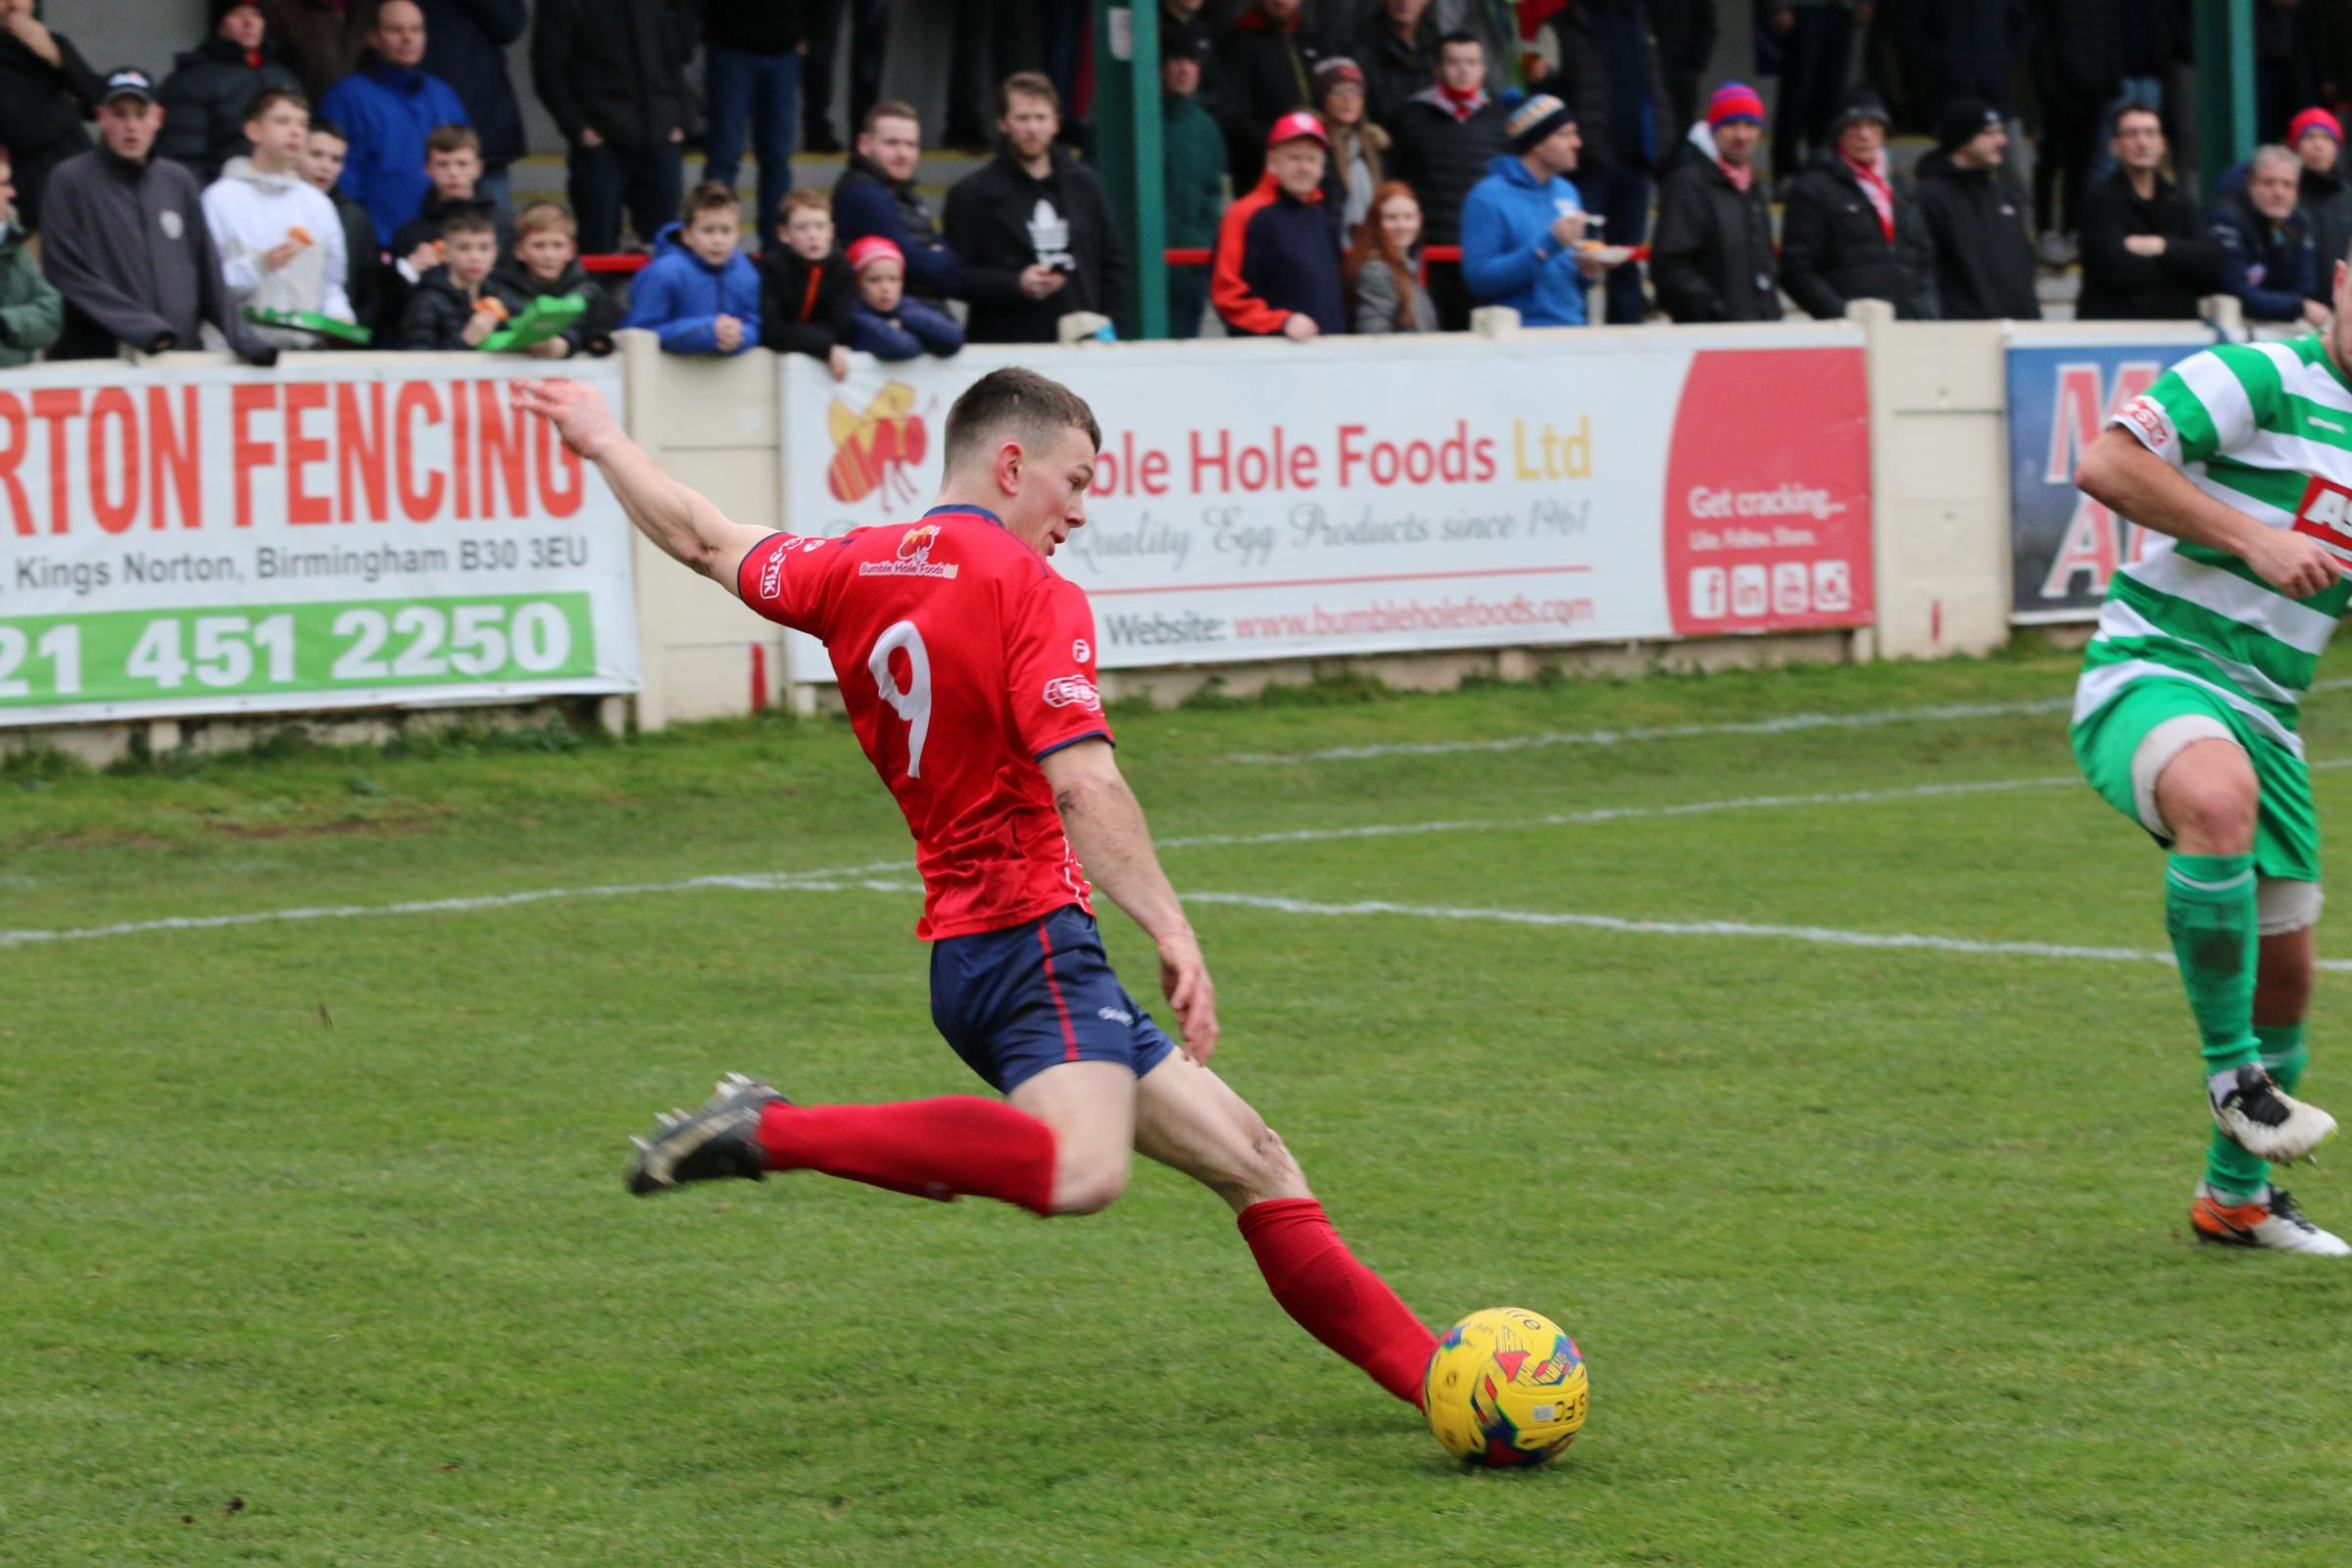 Jason Cowley in action against Thame. Photo: David Besley